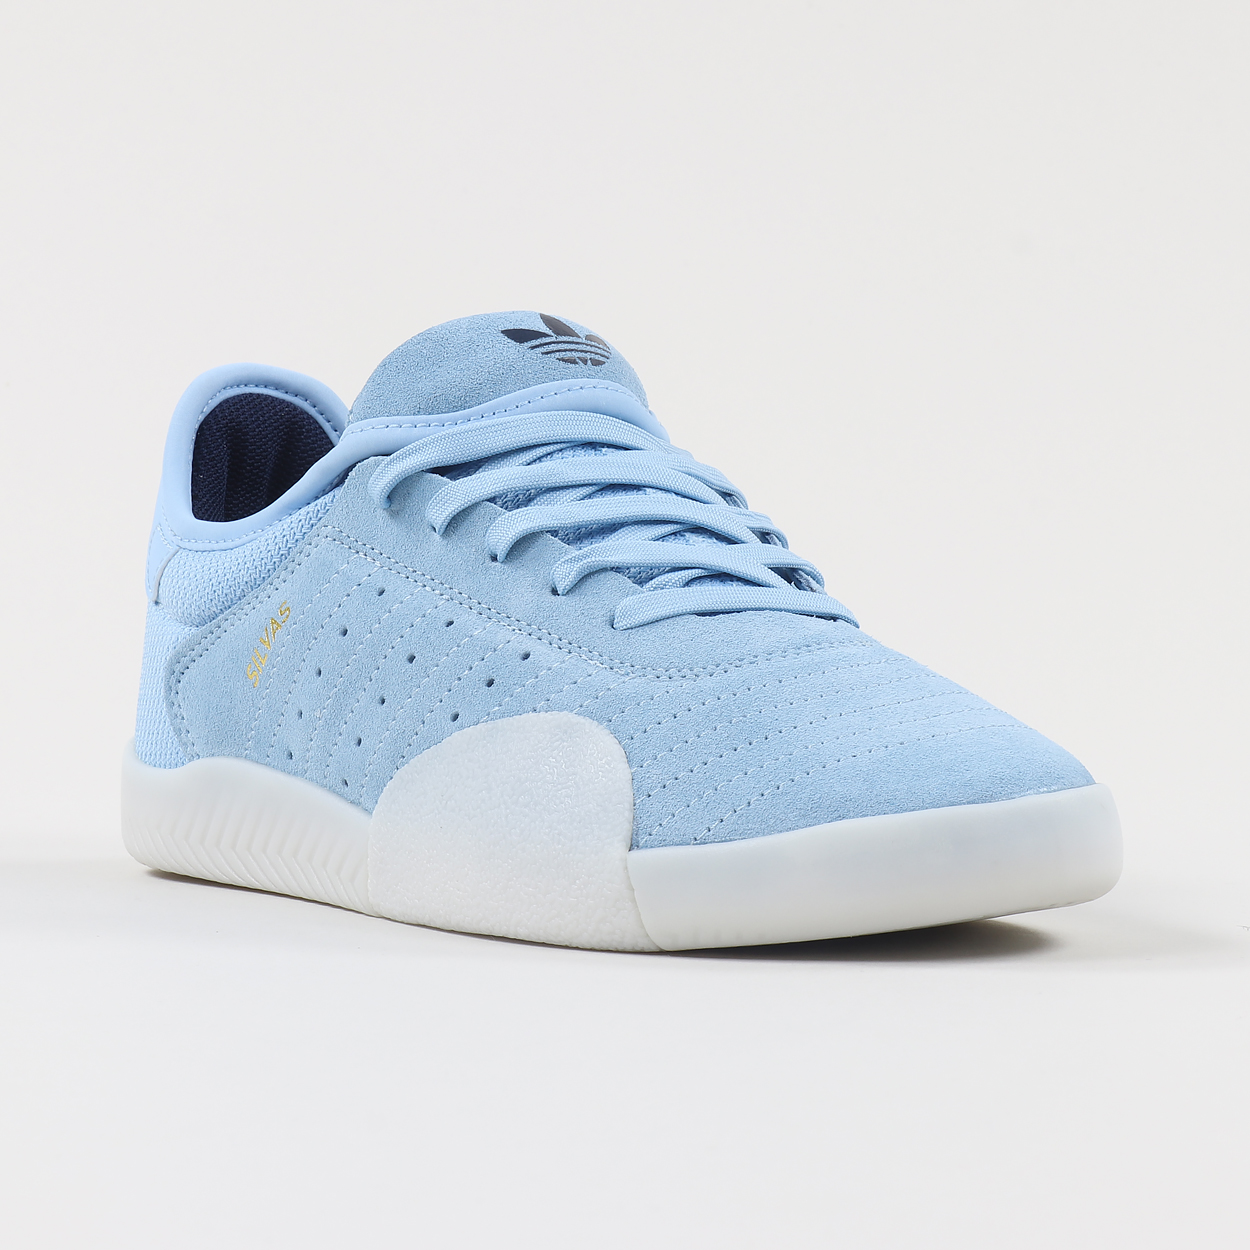 sale retailer a439c 305df adidas Skateboardings 3ST.003 is a versatile model which uses sportswear  innovation. This colourway is a signature for pro rider Miles Silvas.